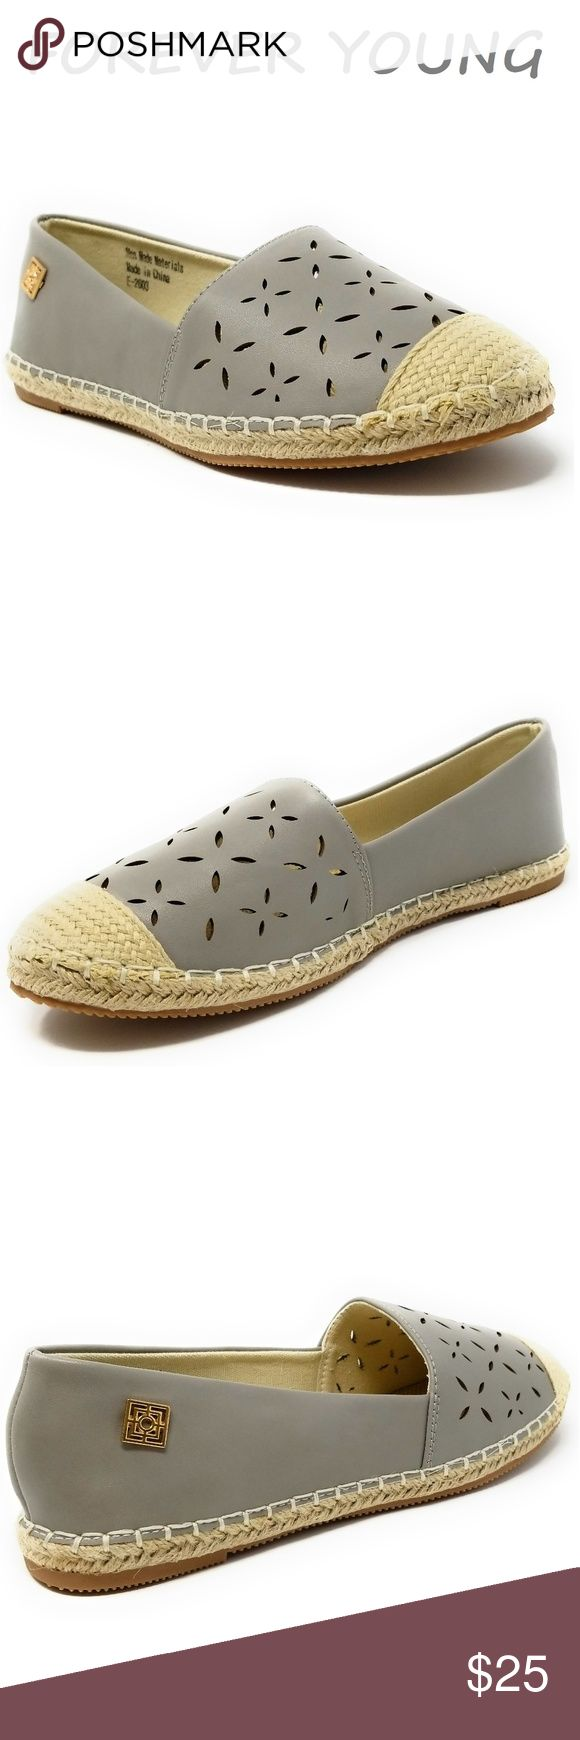 """Women Patterned Espadrille Flats, E-2603, Grey Brand new woman woven espadrille flats in gray with a flower pattern. Diligently crafted from glossy faux leather upper with extra soft insoles and a textured rubberized outer sole for traction. Pretty emblem in the back. Measurements: sizes 6 through 8 are true to size. Sizes 8.5 - 11 run small. Standard 3 """" width. Size 8 measures 9.5 inches, sz 8.5 - 9 3/4"""", sz 9 - 10"""", sz 10 - 10.5"""", size 11 fits a true size 9.5 wearer. Slip it on and make a…"""